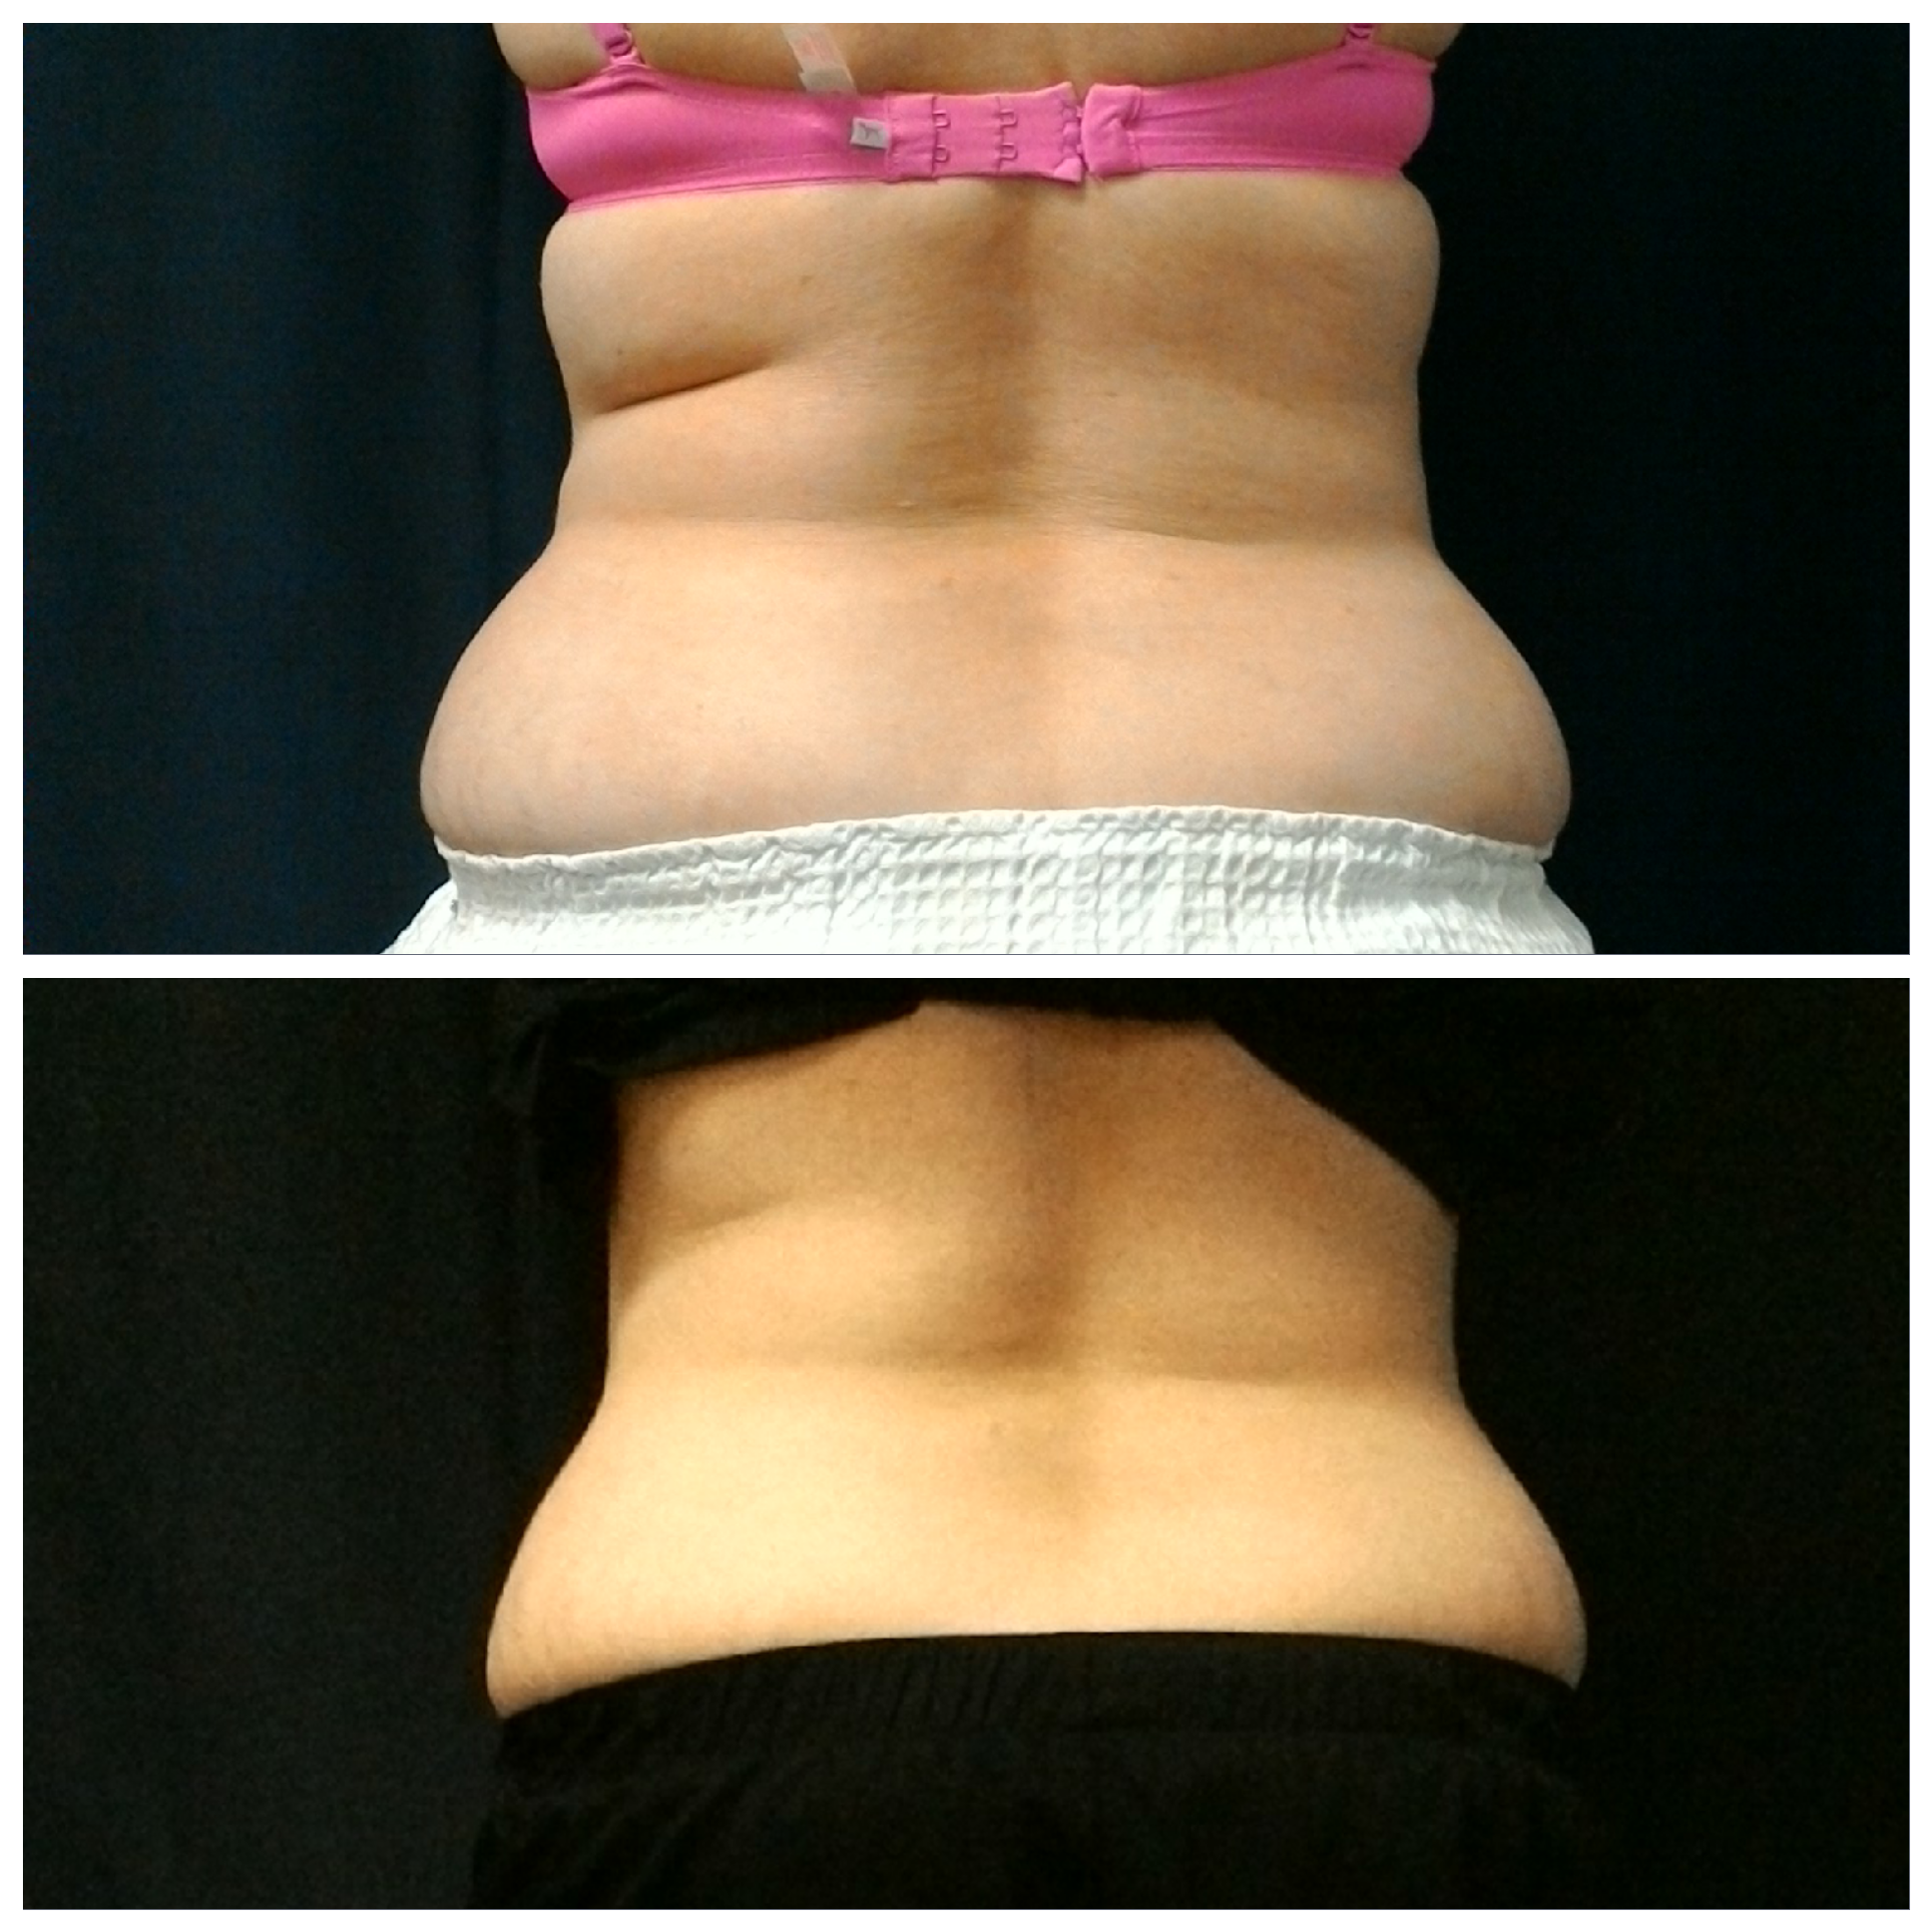 50 year old female after one treatment of SculpSure